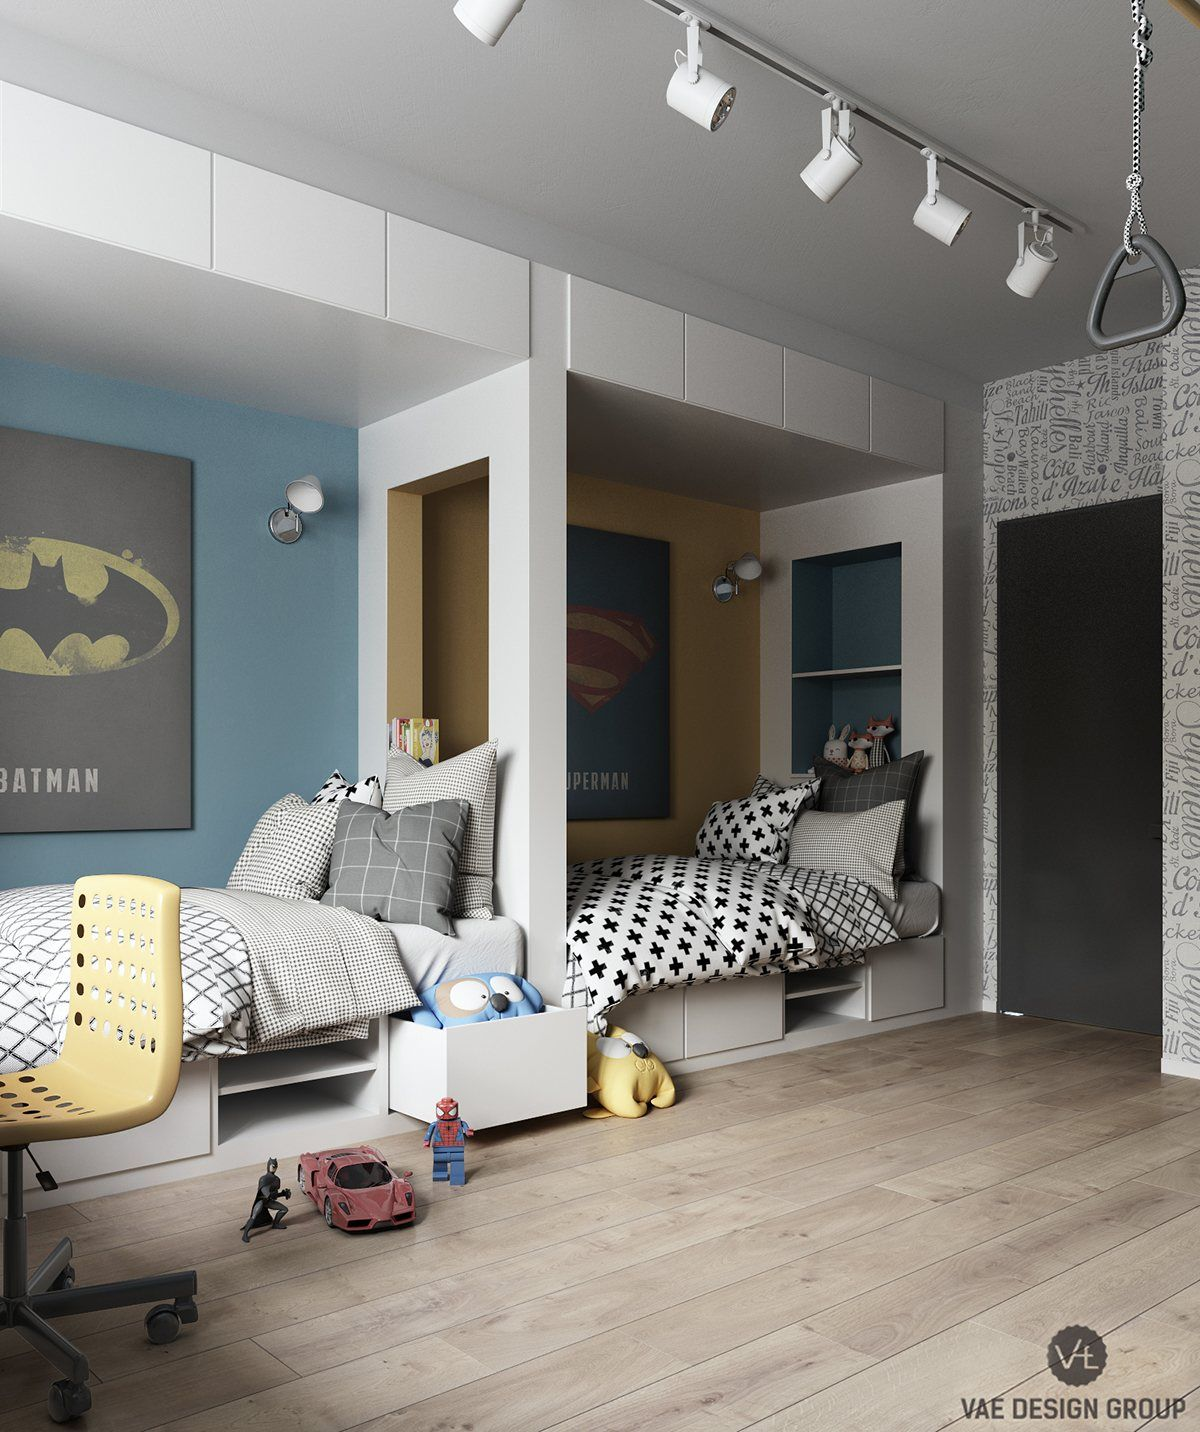 Overhead Bedroom Cabinets Imaginative Kids Room Design Ideas With Cartoon Wallpaper The